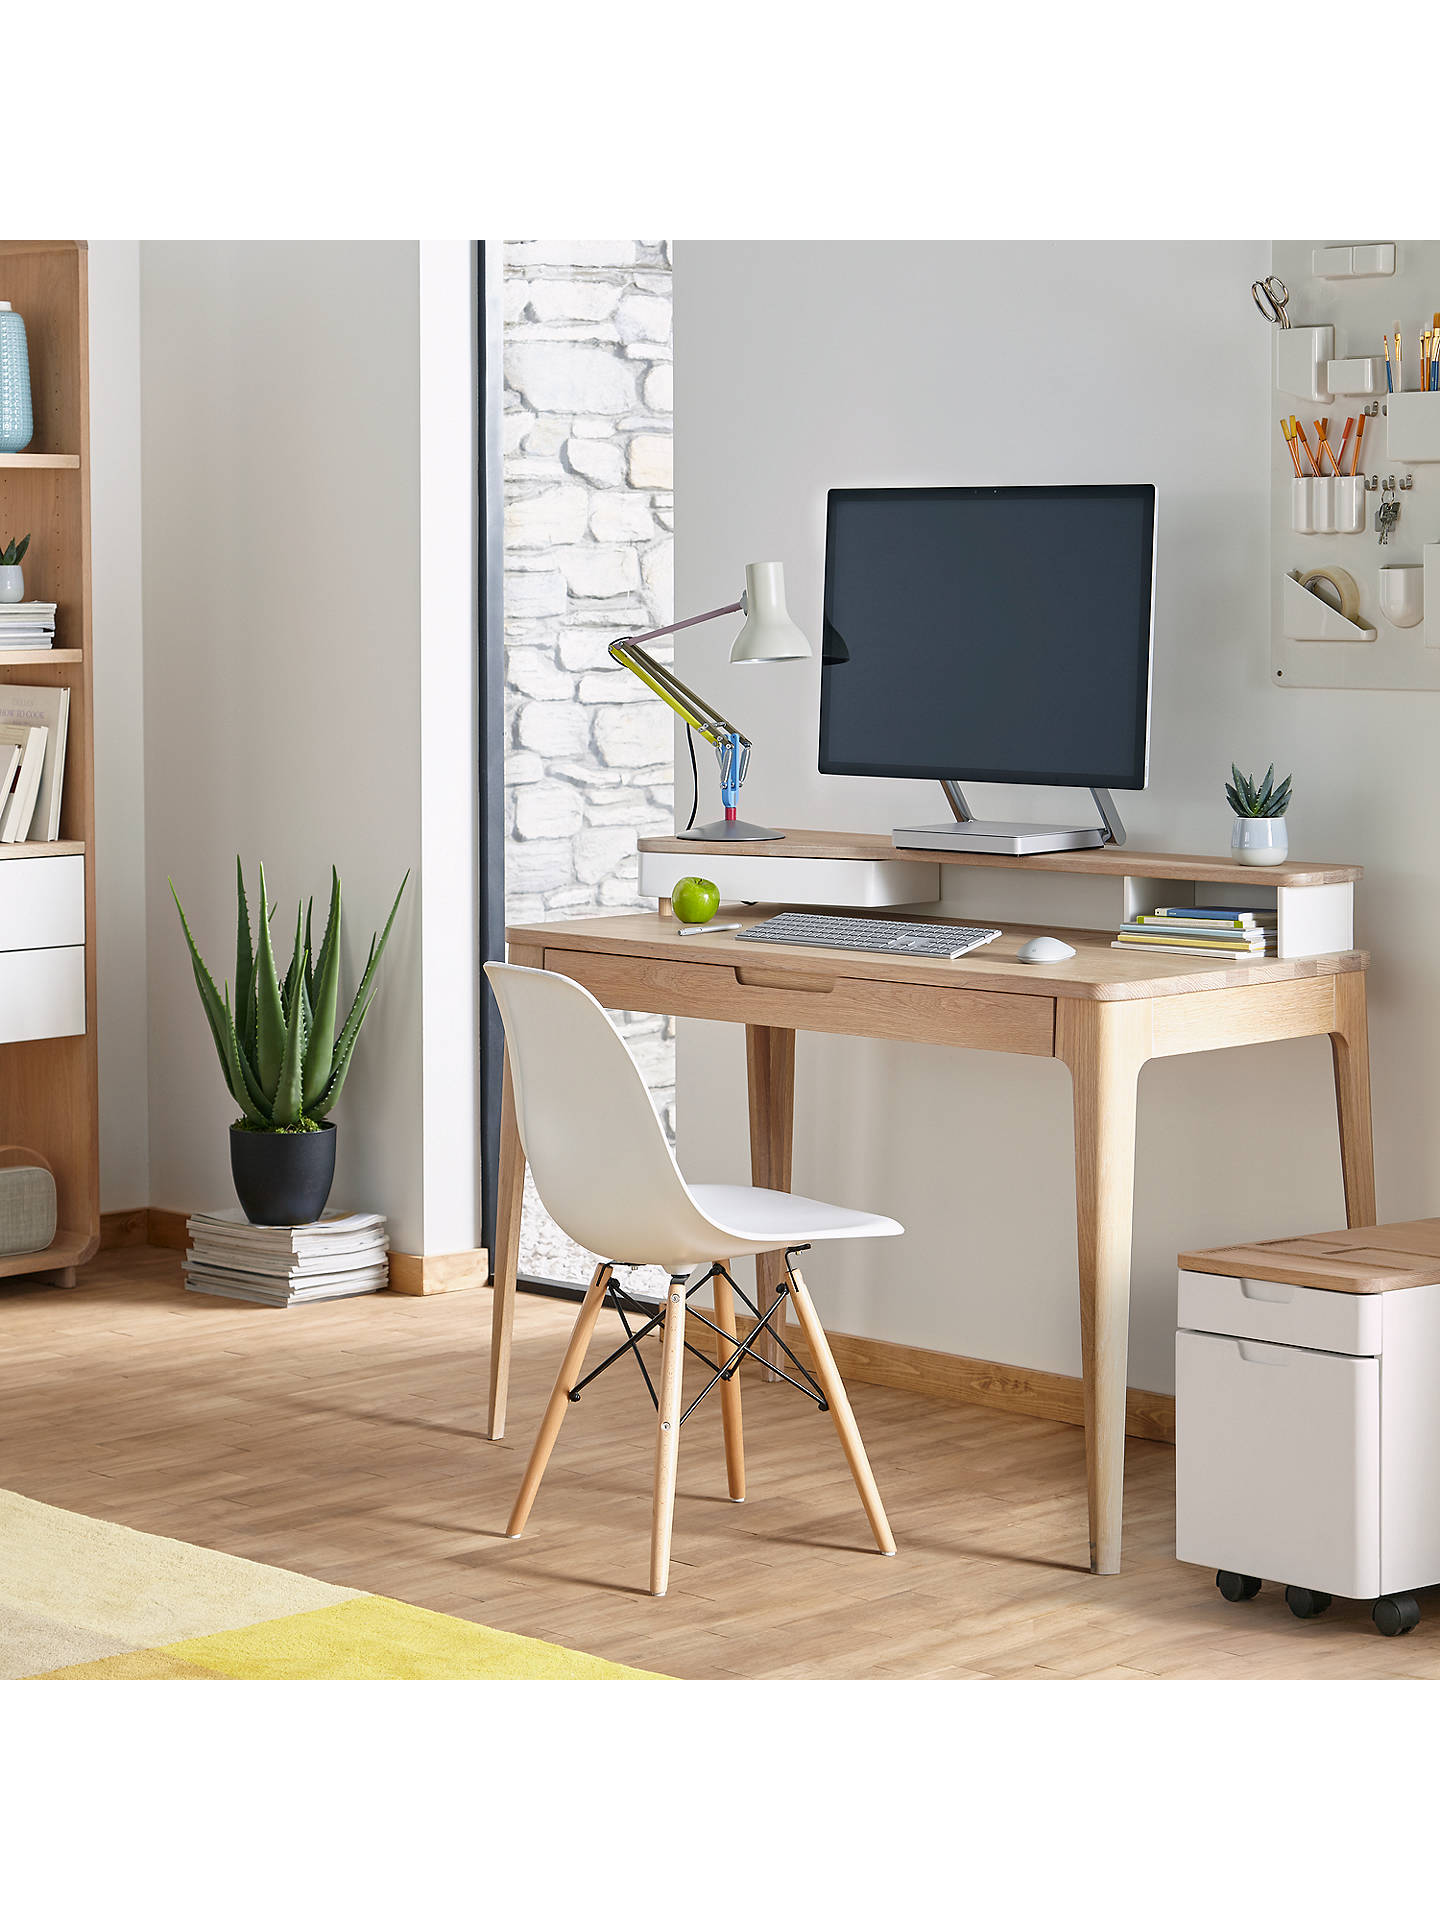 Buy Ebbe Gehl for John Lewis Mira Filing Cabinet, White/Oak Online at johnlewis.com